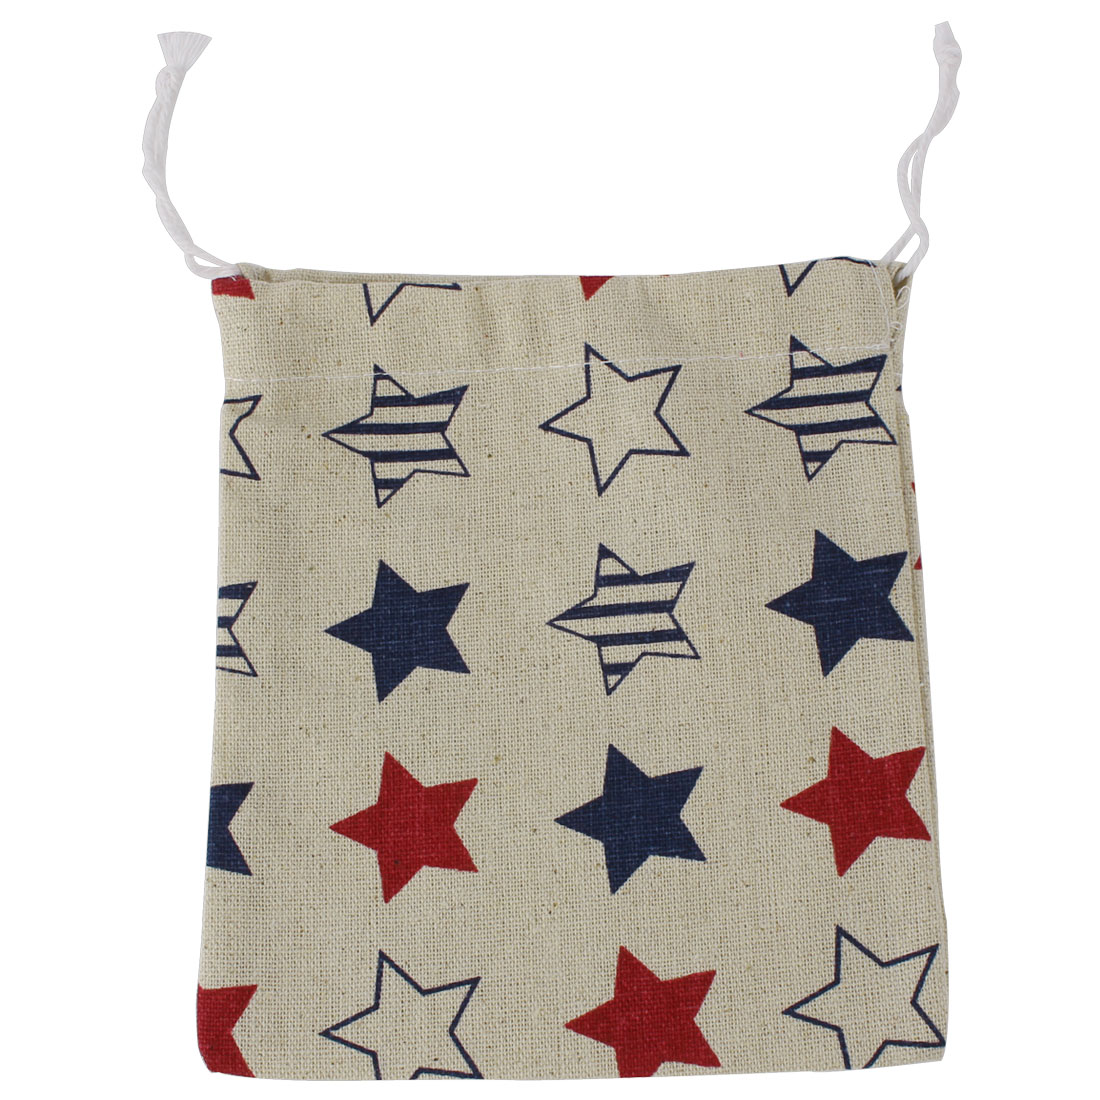 Home Travel Cotton Linen Star Pattern Storage Packing Bag Drawstring Pouch Holder